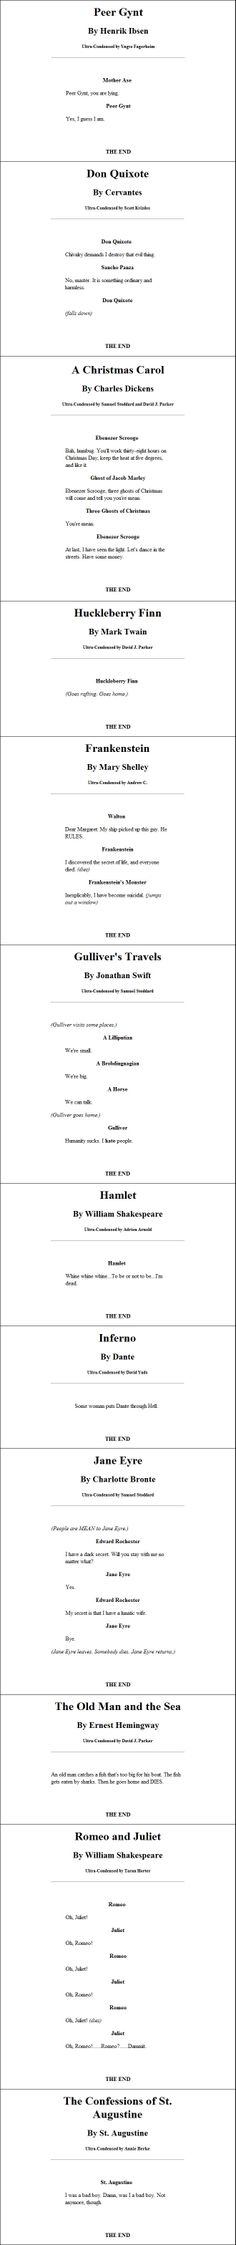 Ultra-condesned classic books. Repinning for Hamlet and St. Augustine.